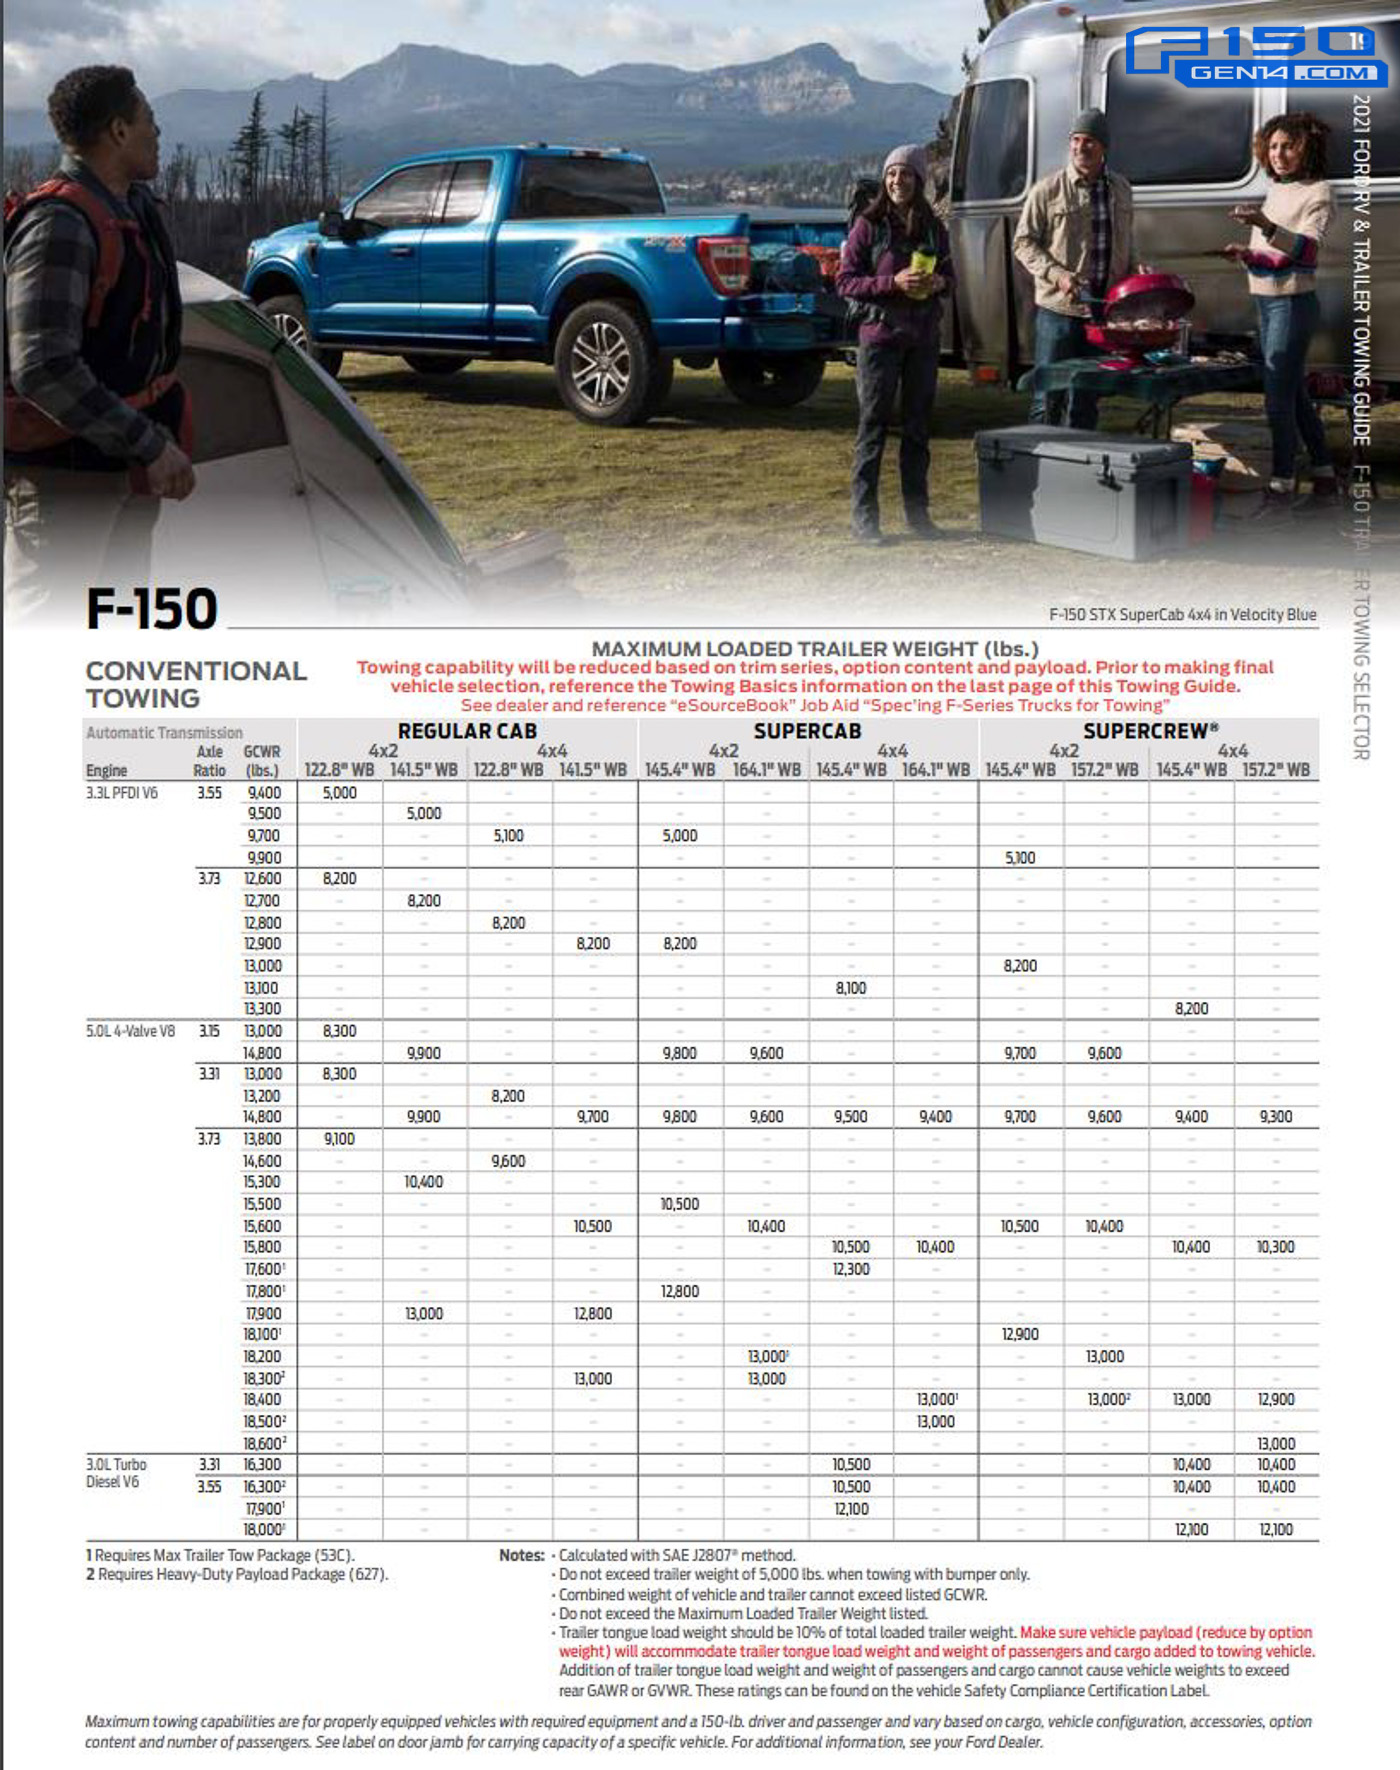 2021-F-150-Towing-Payload-Capacity-Guide-06.jpg